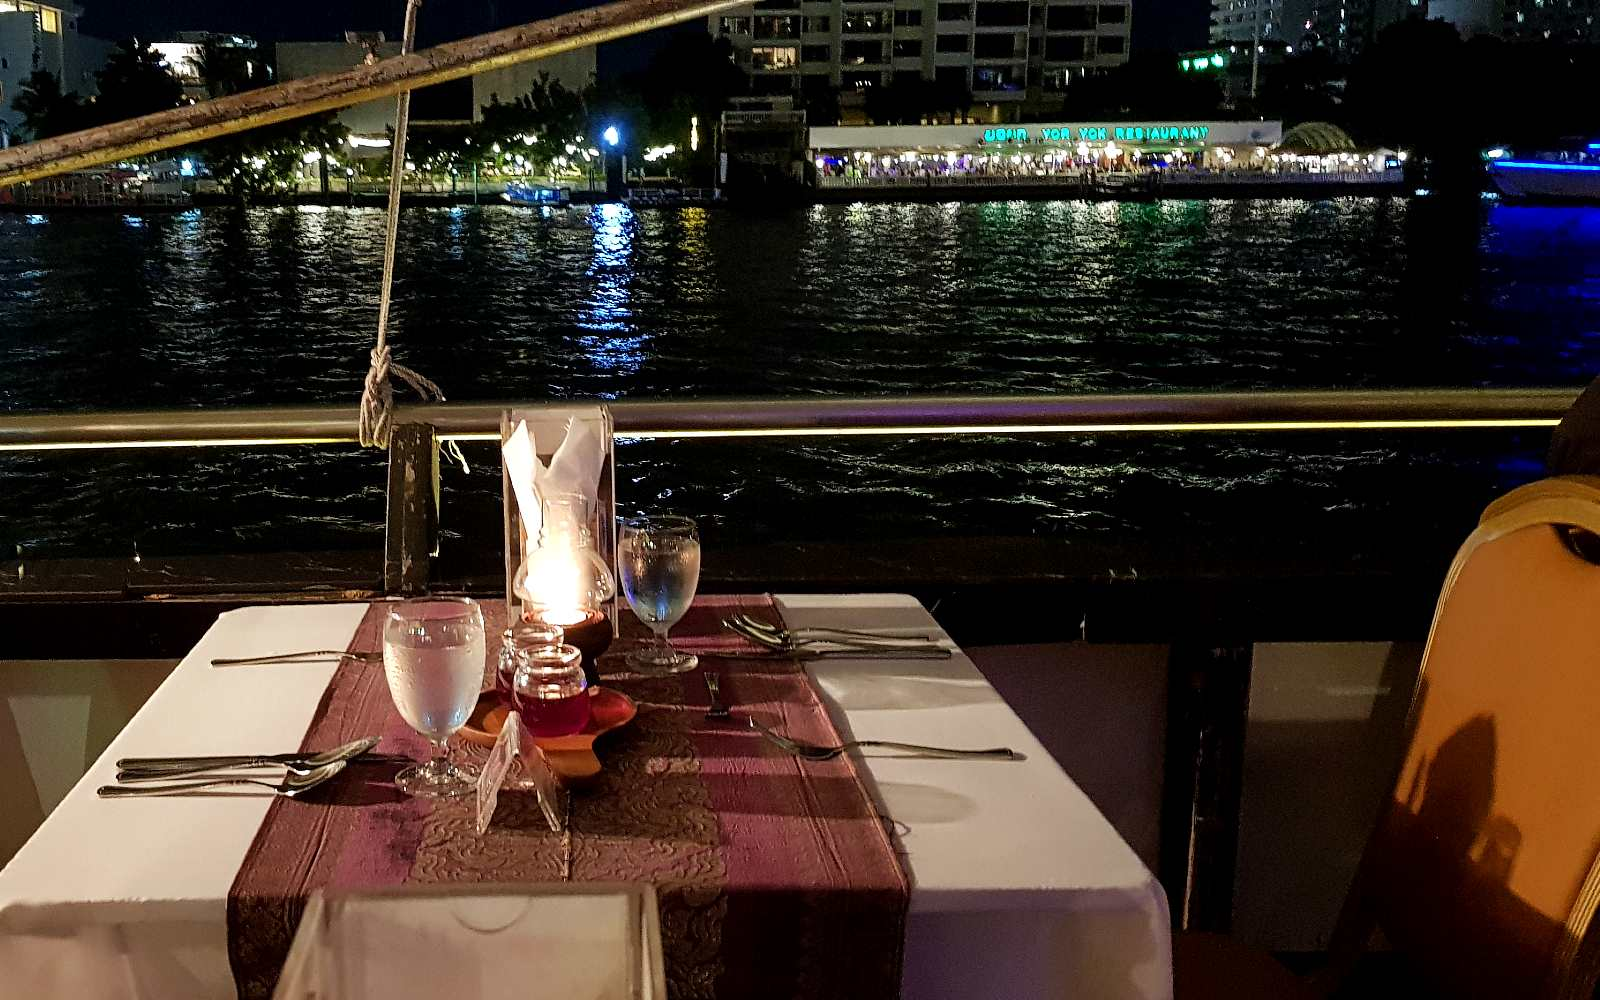 Nicely set table overlooking the river